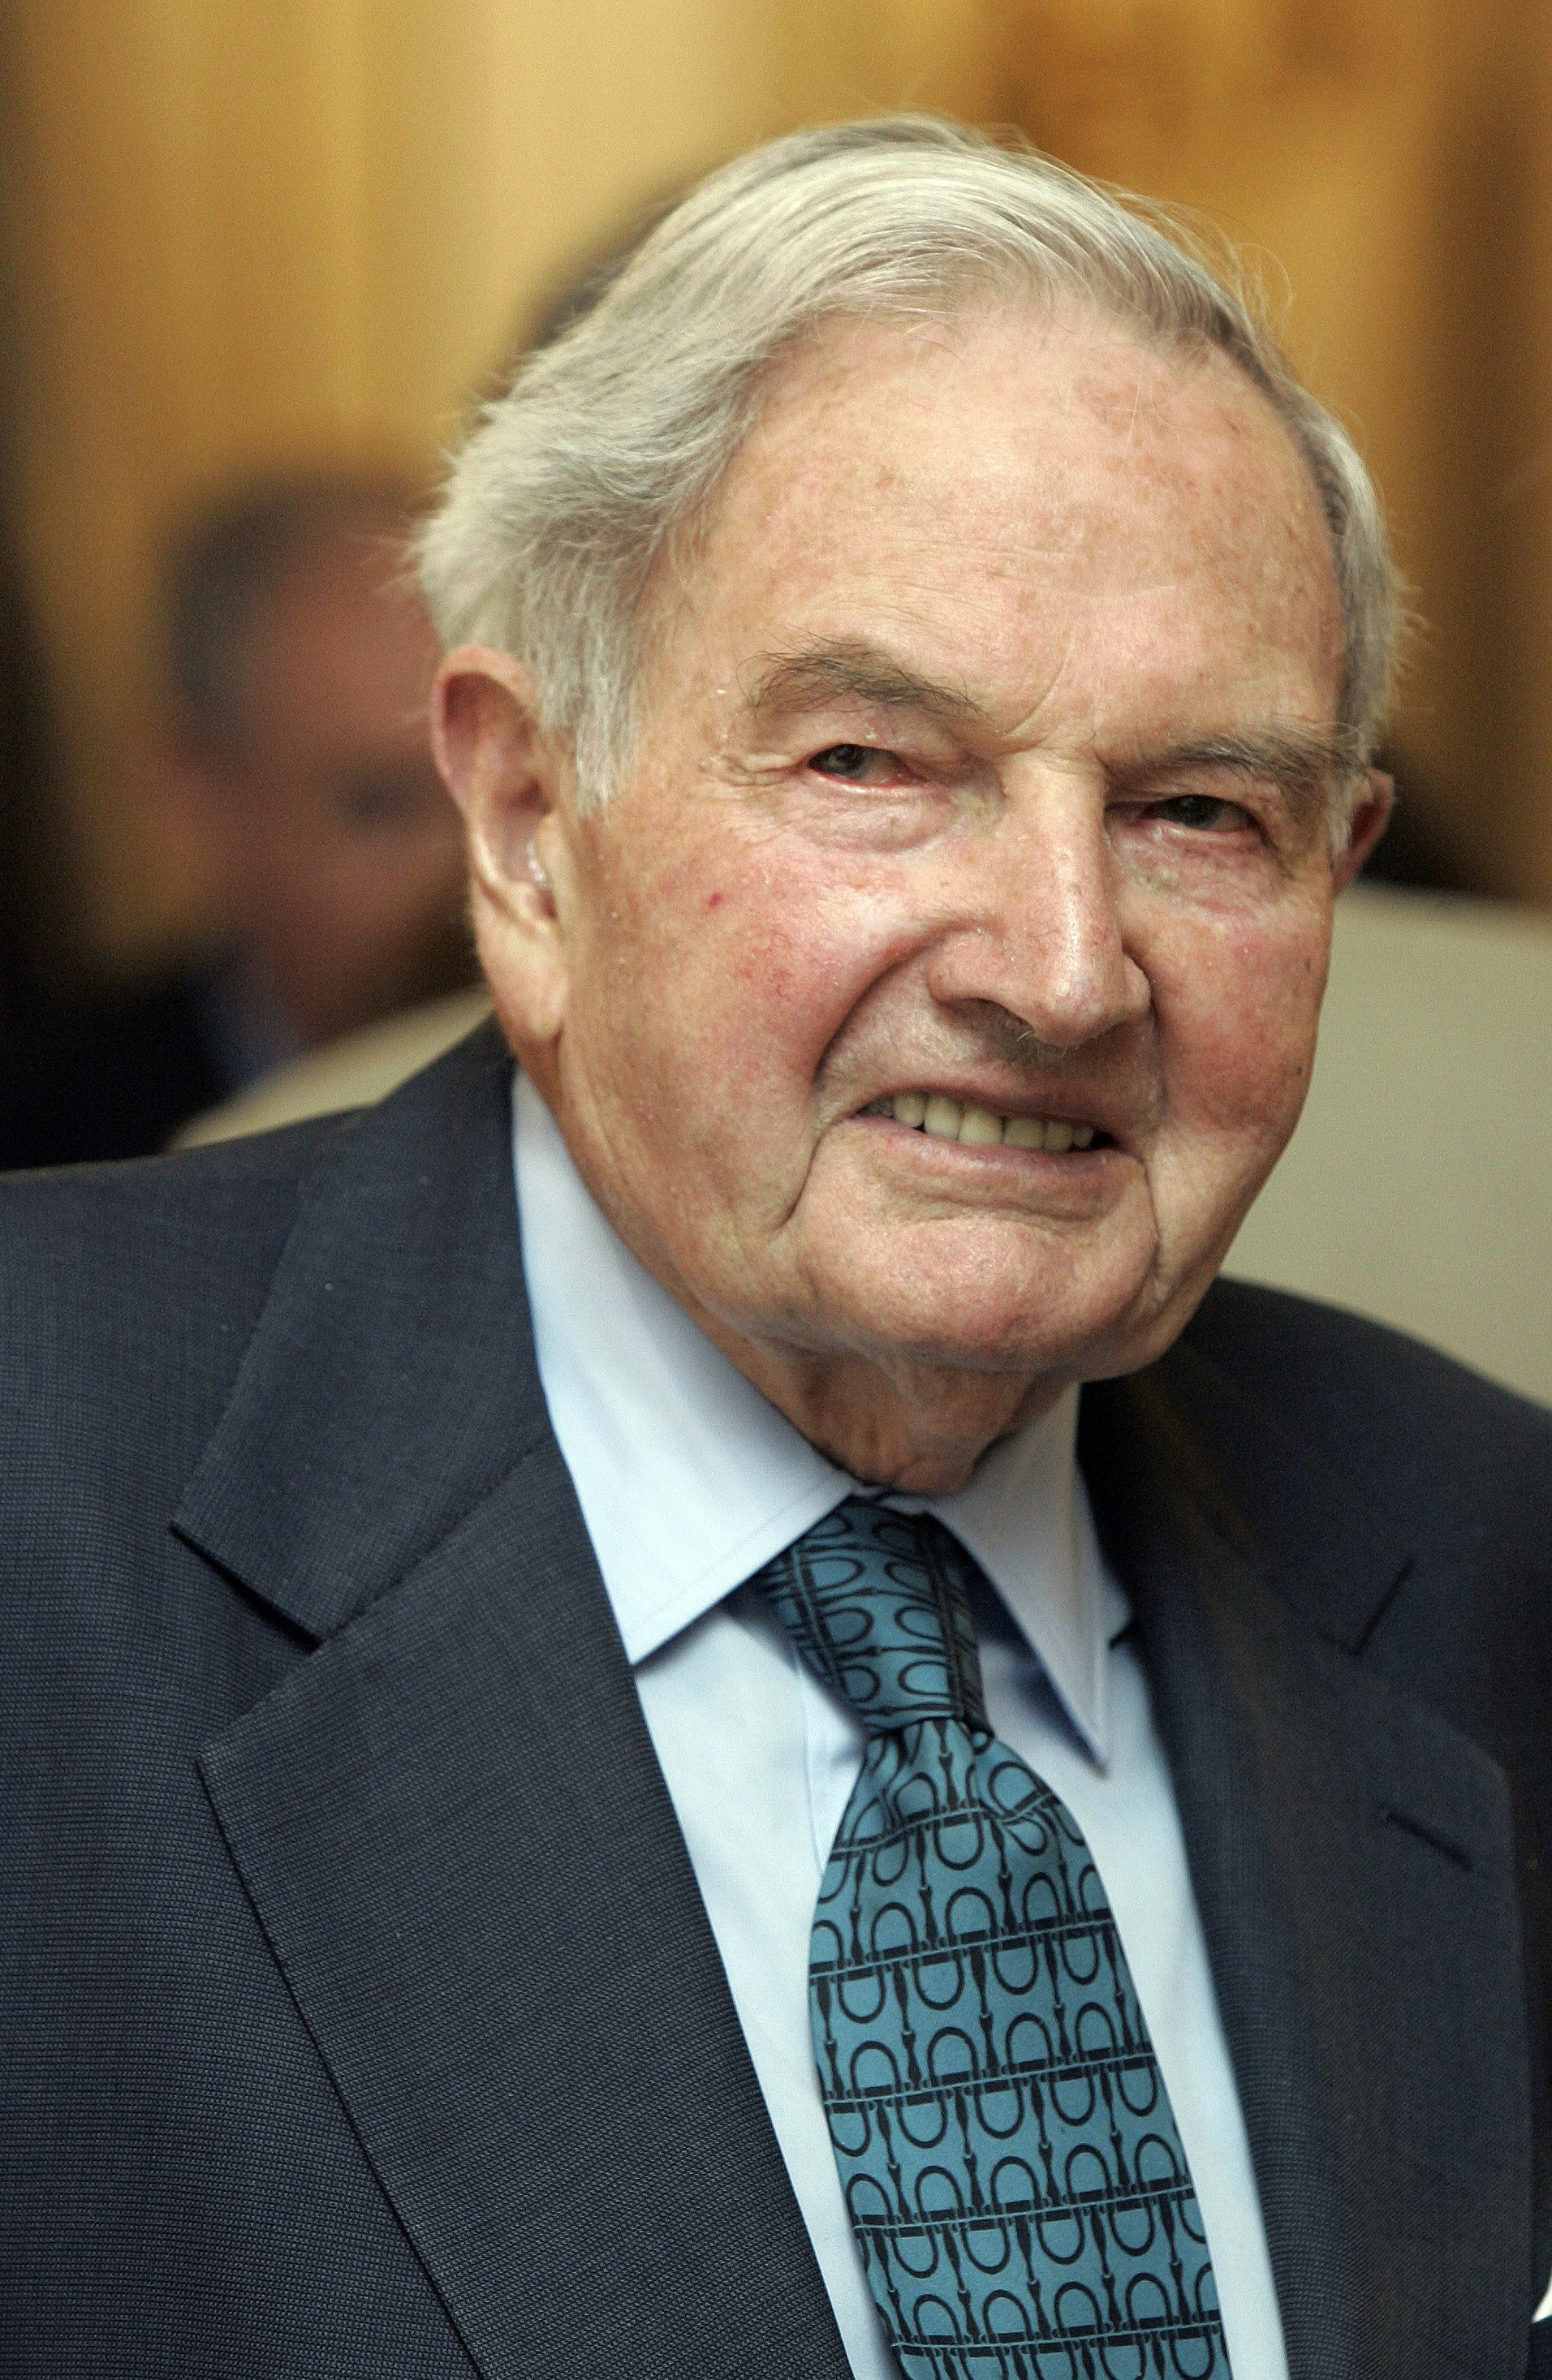 Obit David Rockefeller-1 FILE - In this May 15, 2007, file photo, David Rockefeller participates in the C40 Large Cities Climate Summit in New York. The billionaire philanthropist who was the last of his generation in the famously philanthropic Rockefeller family died Monday, March 20, 2017, according to a family spokesman. He was 101 years old. (AP Photo/Richard Drew, File)